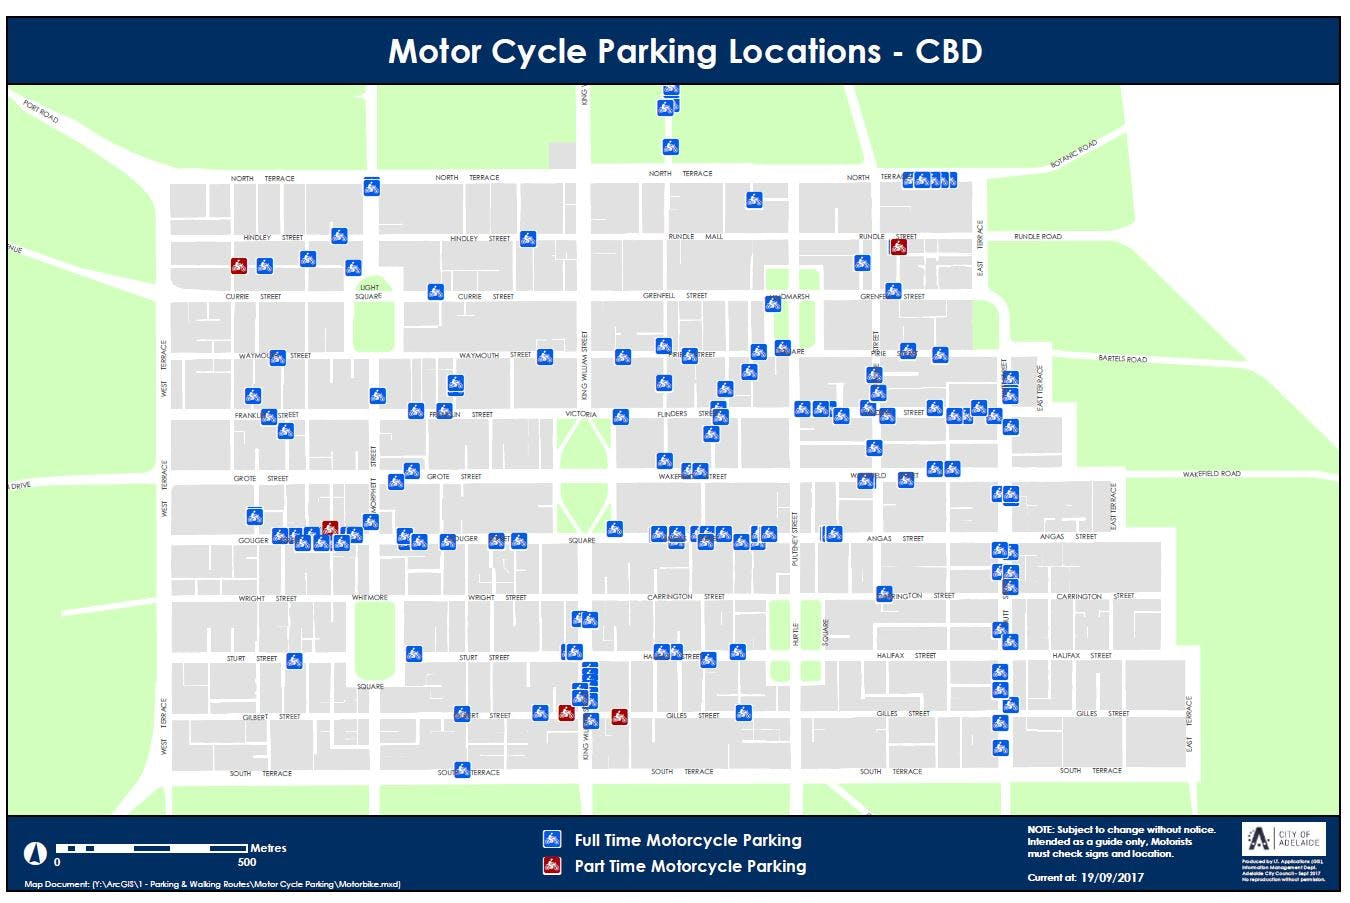 Motor Cycle Parking Locations In Adelaide Cbd